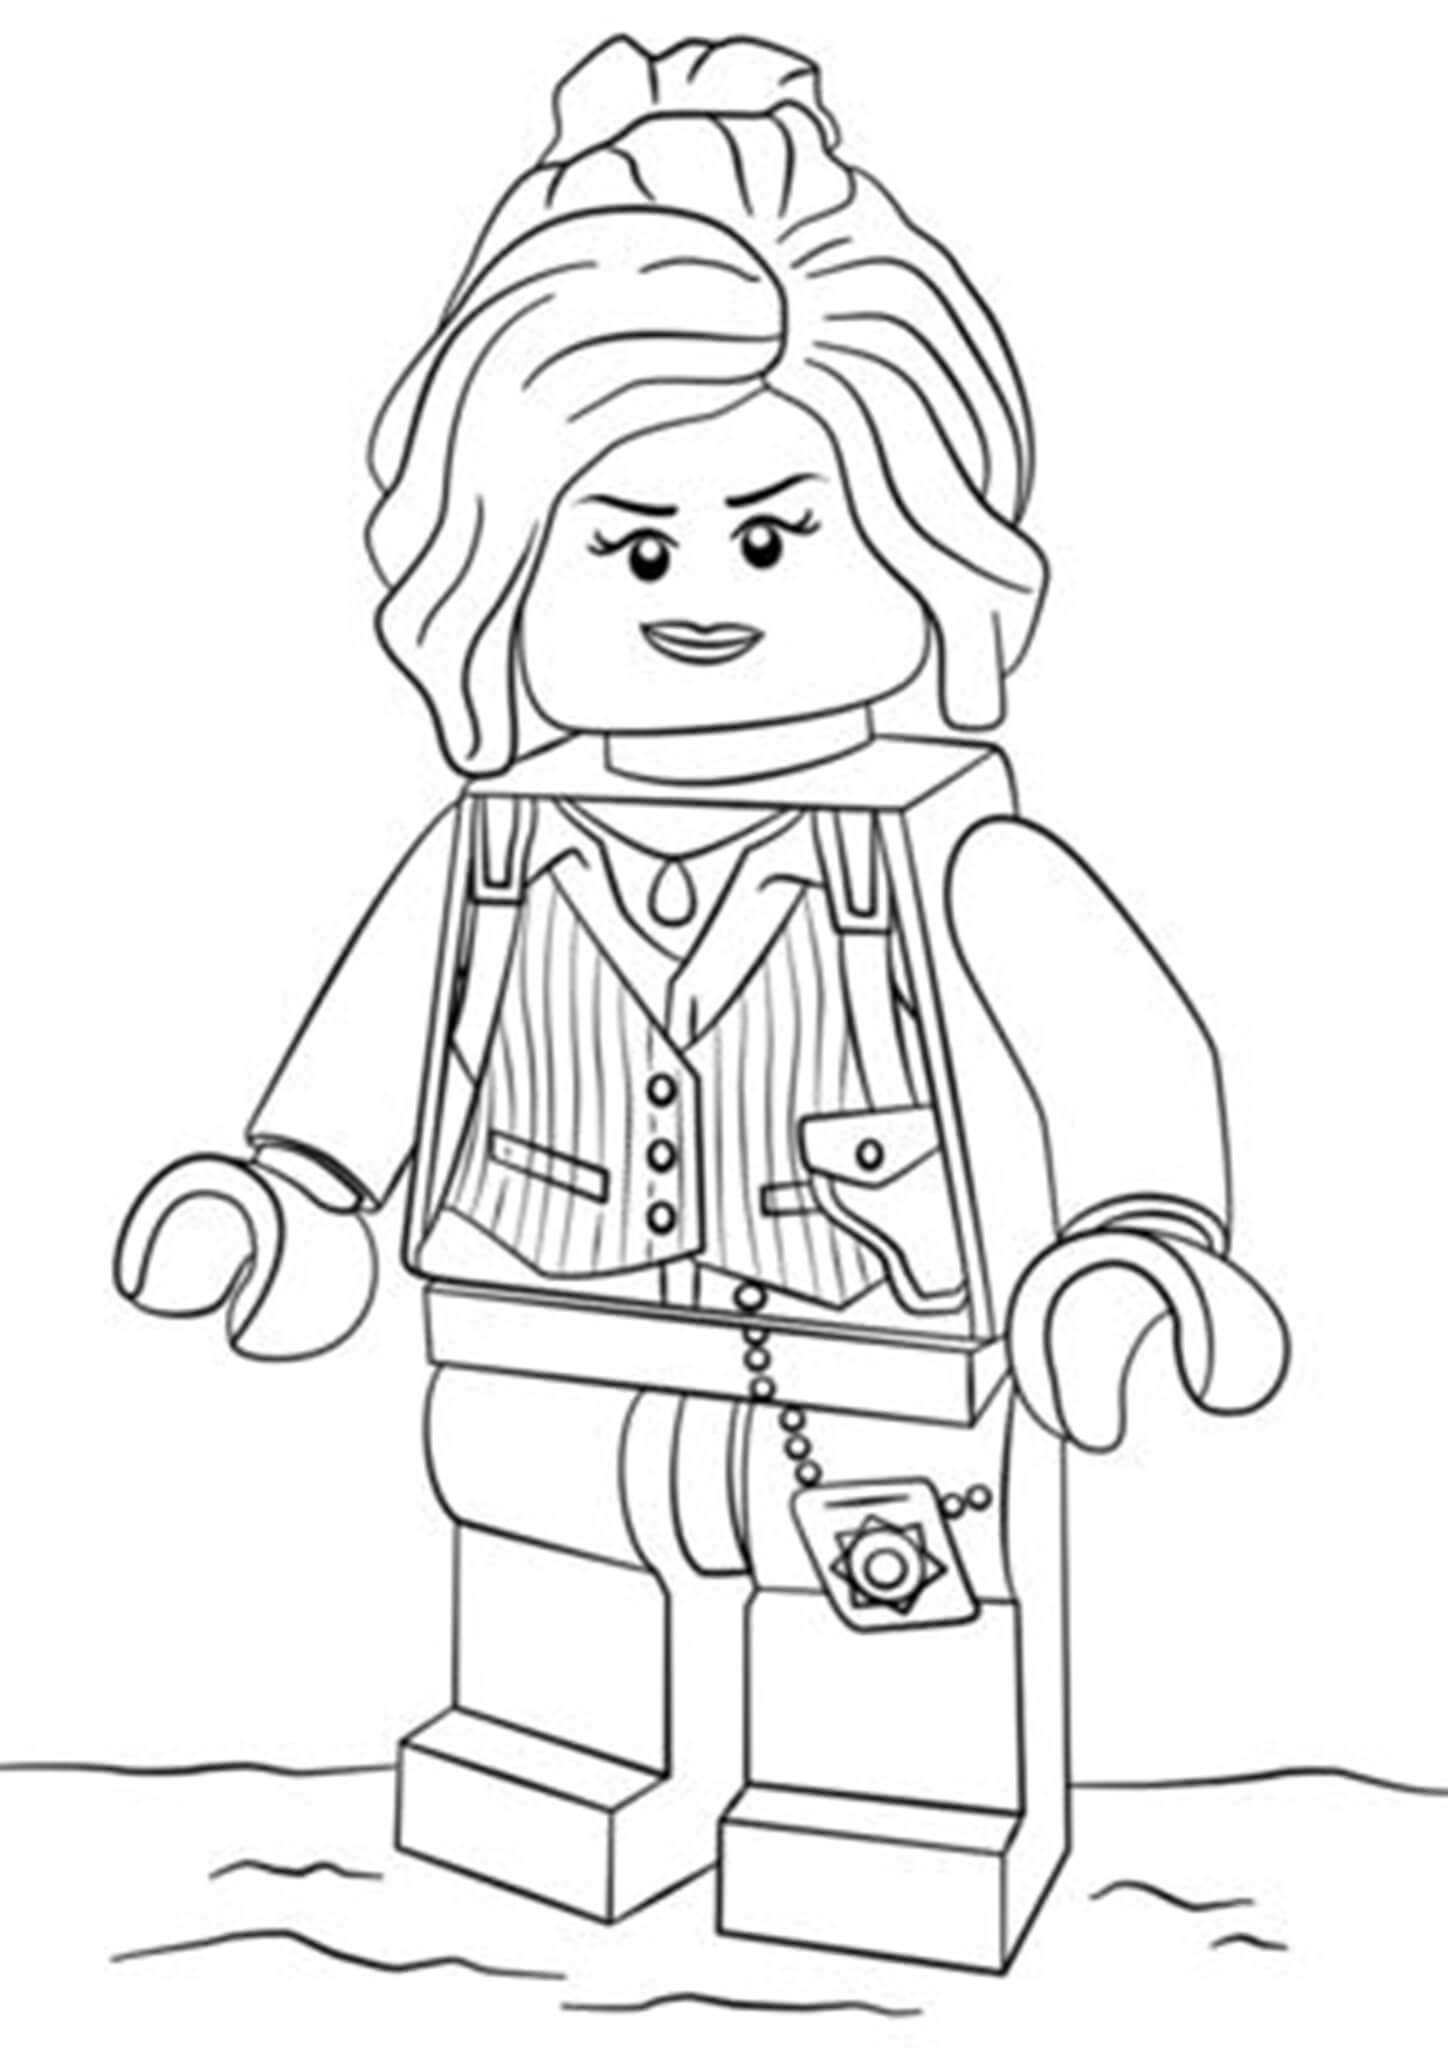 Free & Easy To Print Lego Batman Coloring Pages  Batman coloring